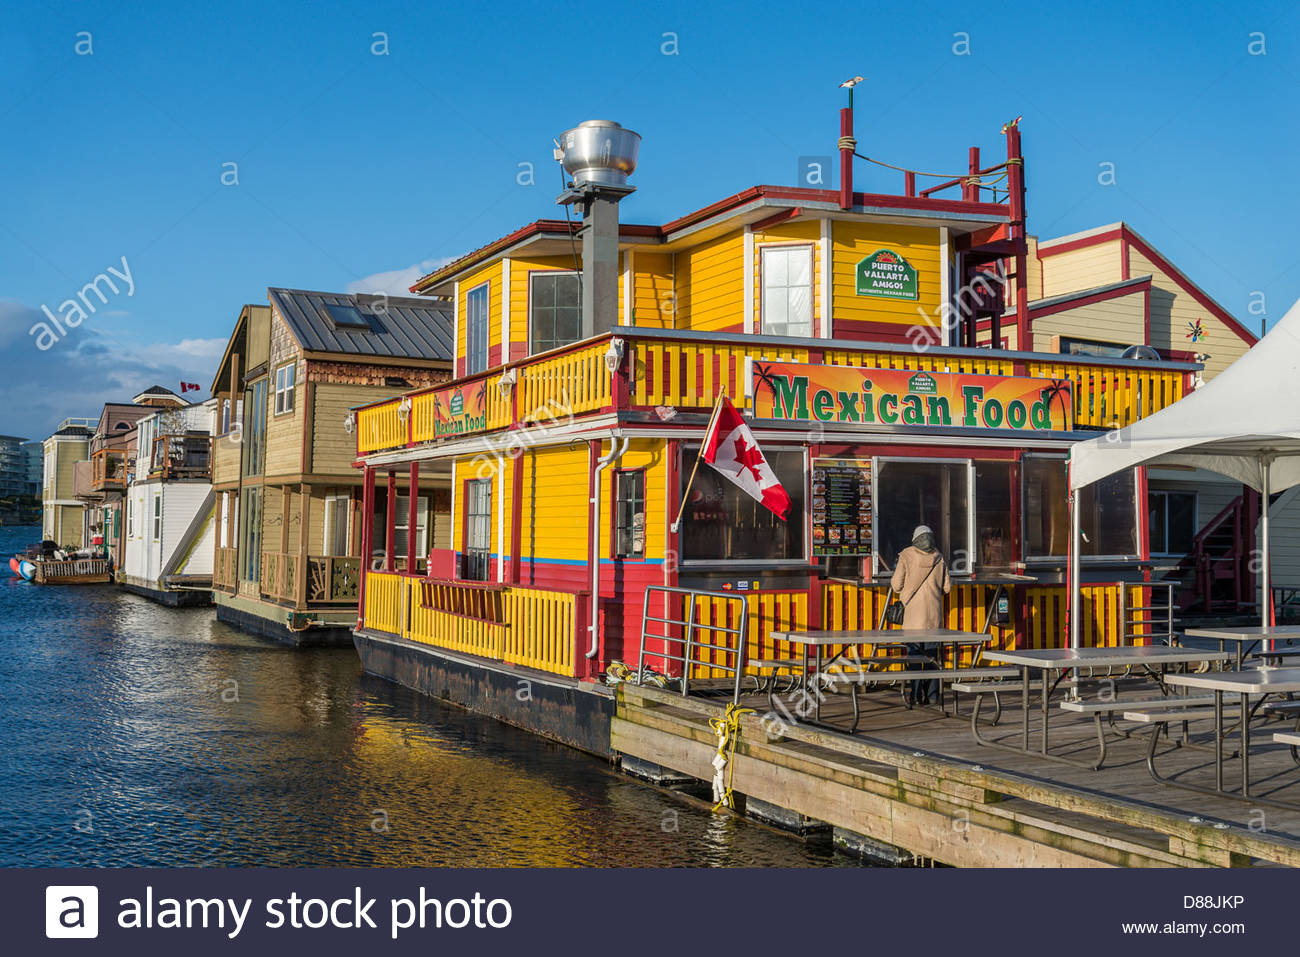 Floating Mexican Restaurant, Fisherman's Wharf, Victoria, British Columbia, Canada - Stock Image